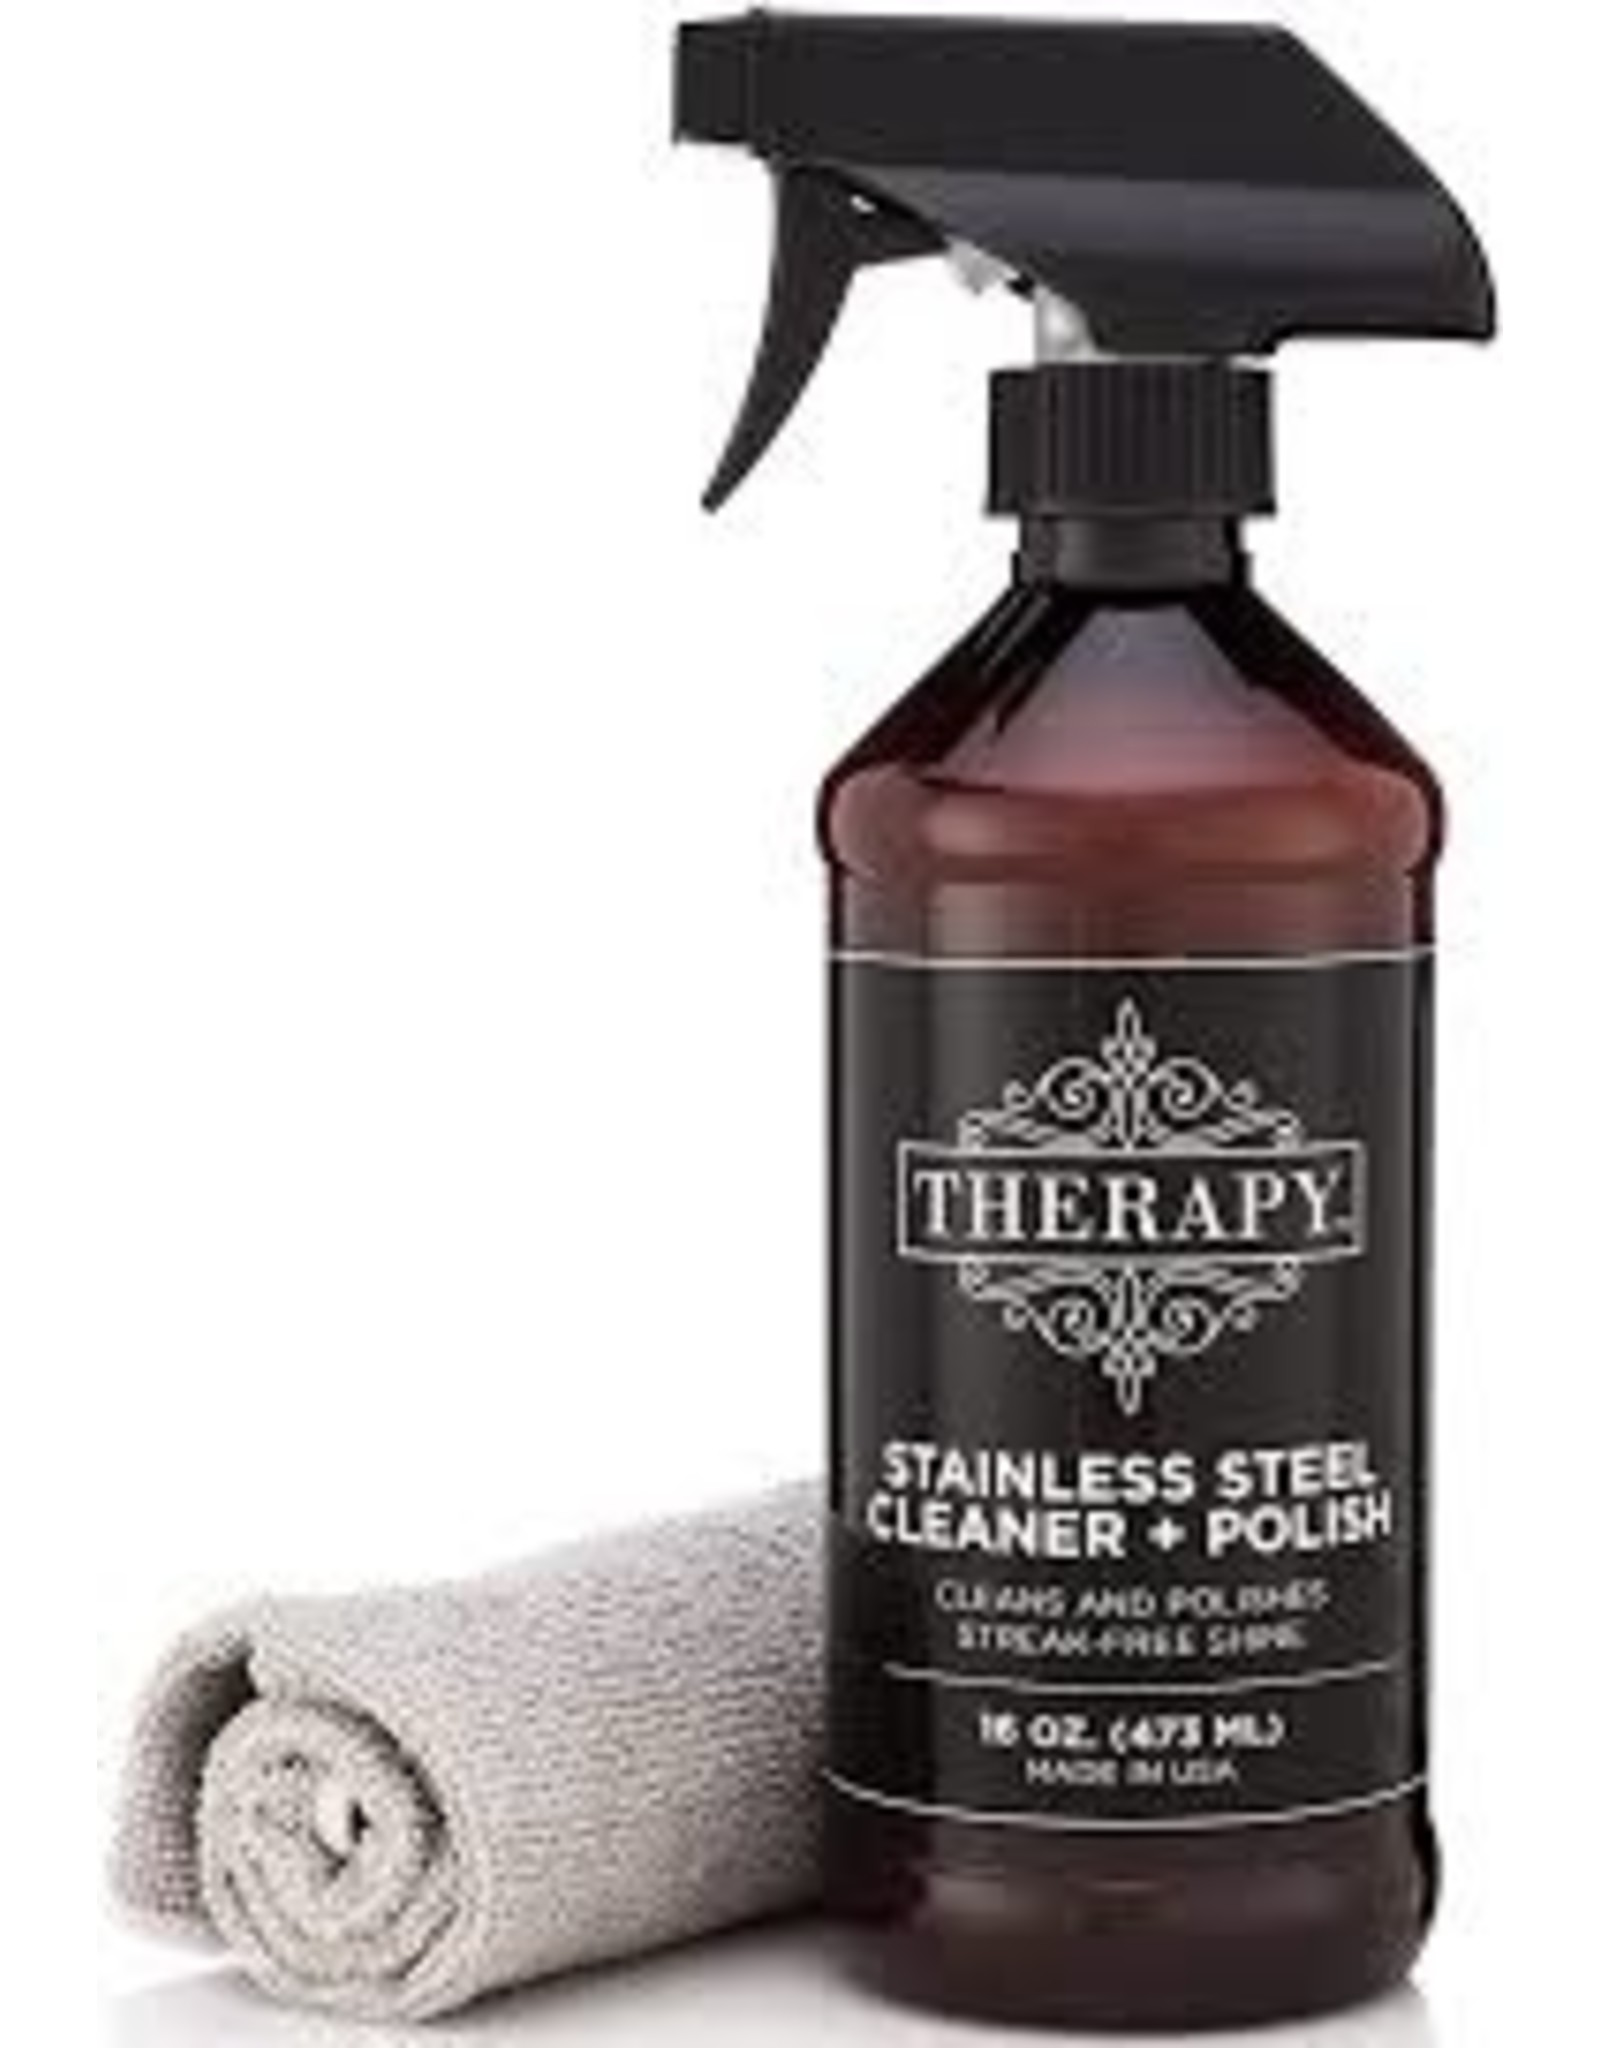 Therapy THER Stainless Steel Polish Kit